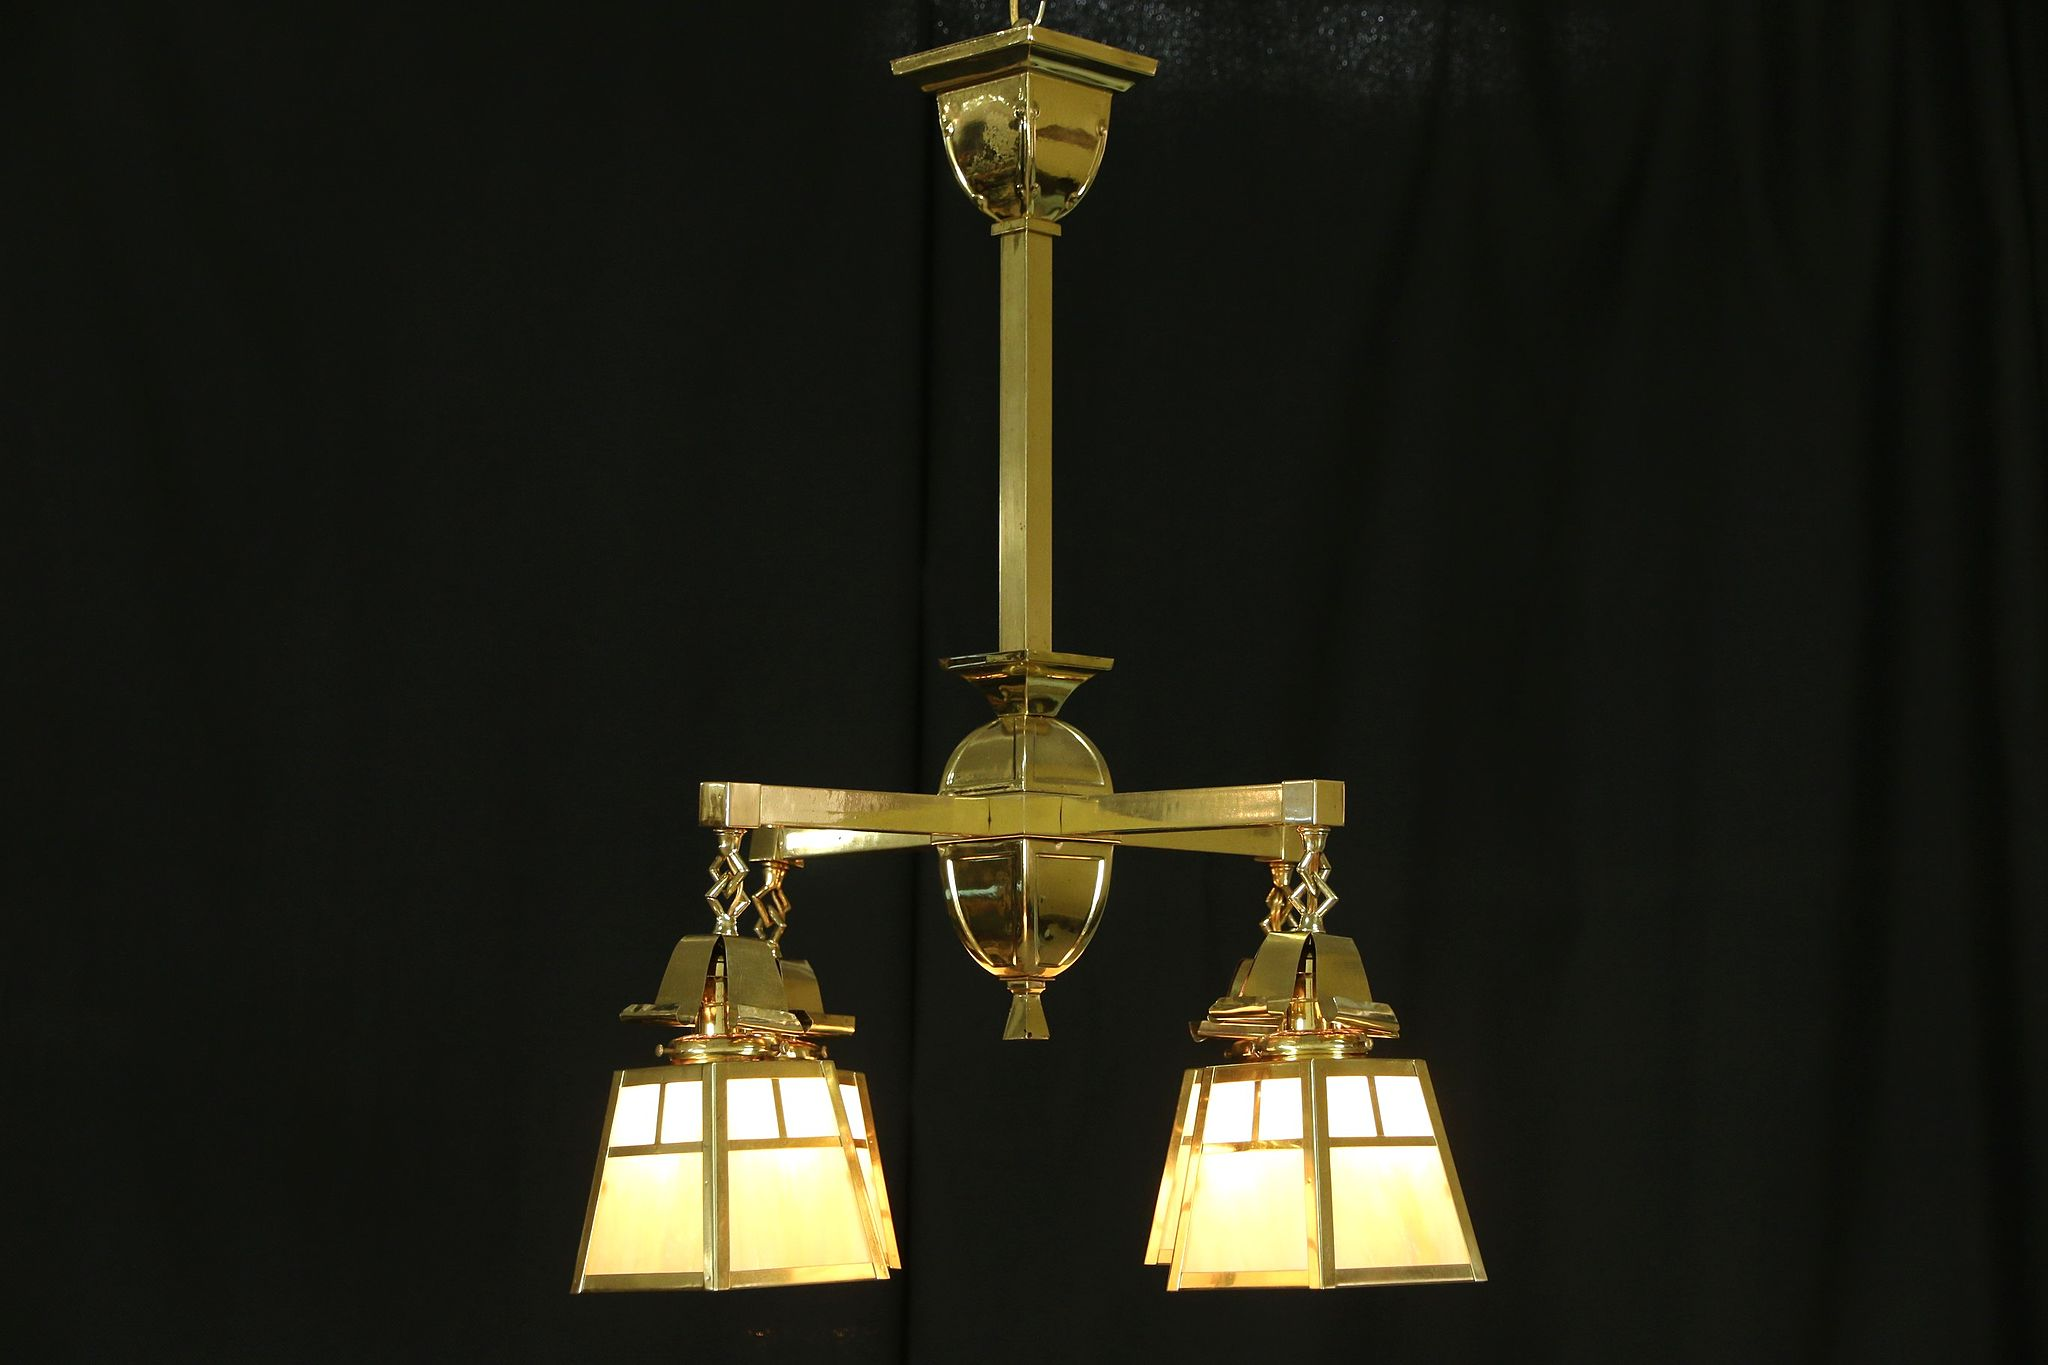 Arts crafts 1910 antique brass chandelier stained glass light fixture